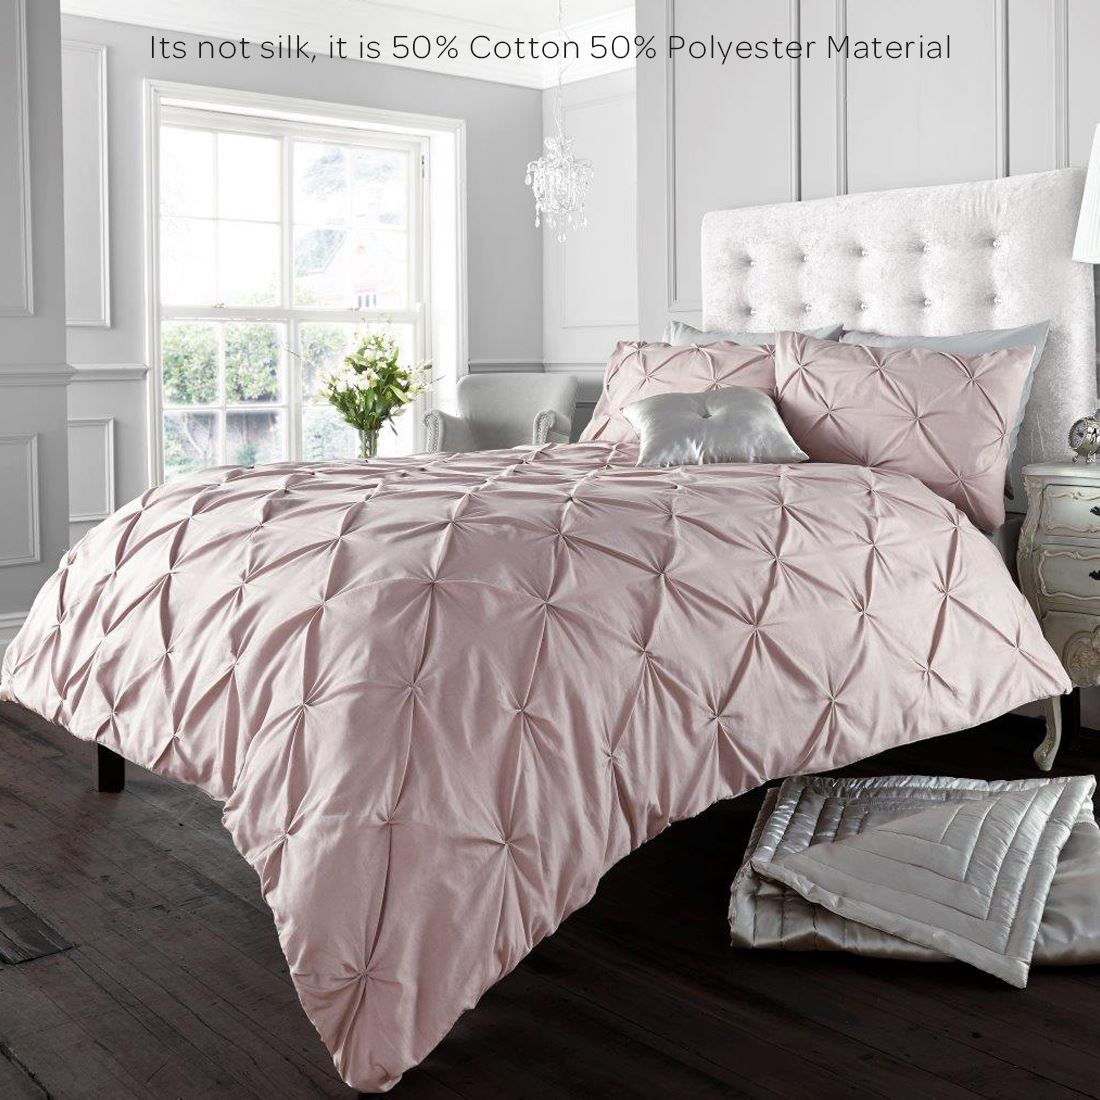 Duvet Cover with Pillowcase Quilt Cover Bedding set single doubl King superking